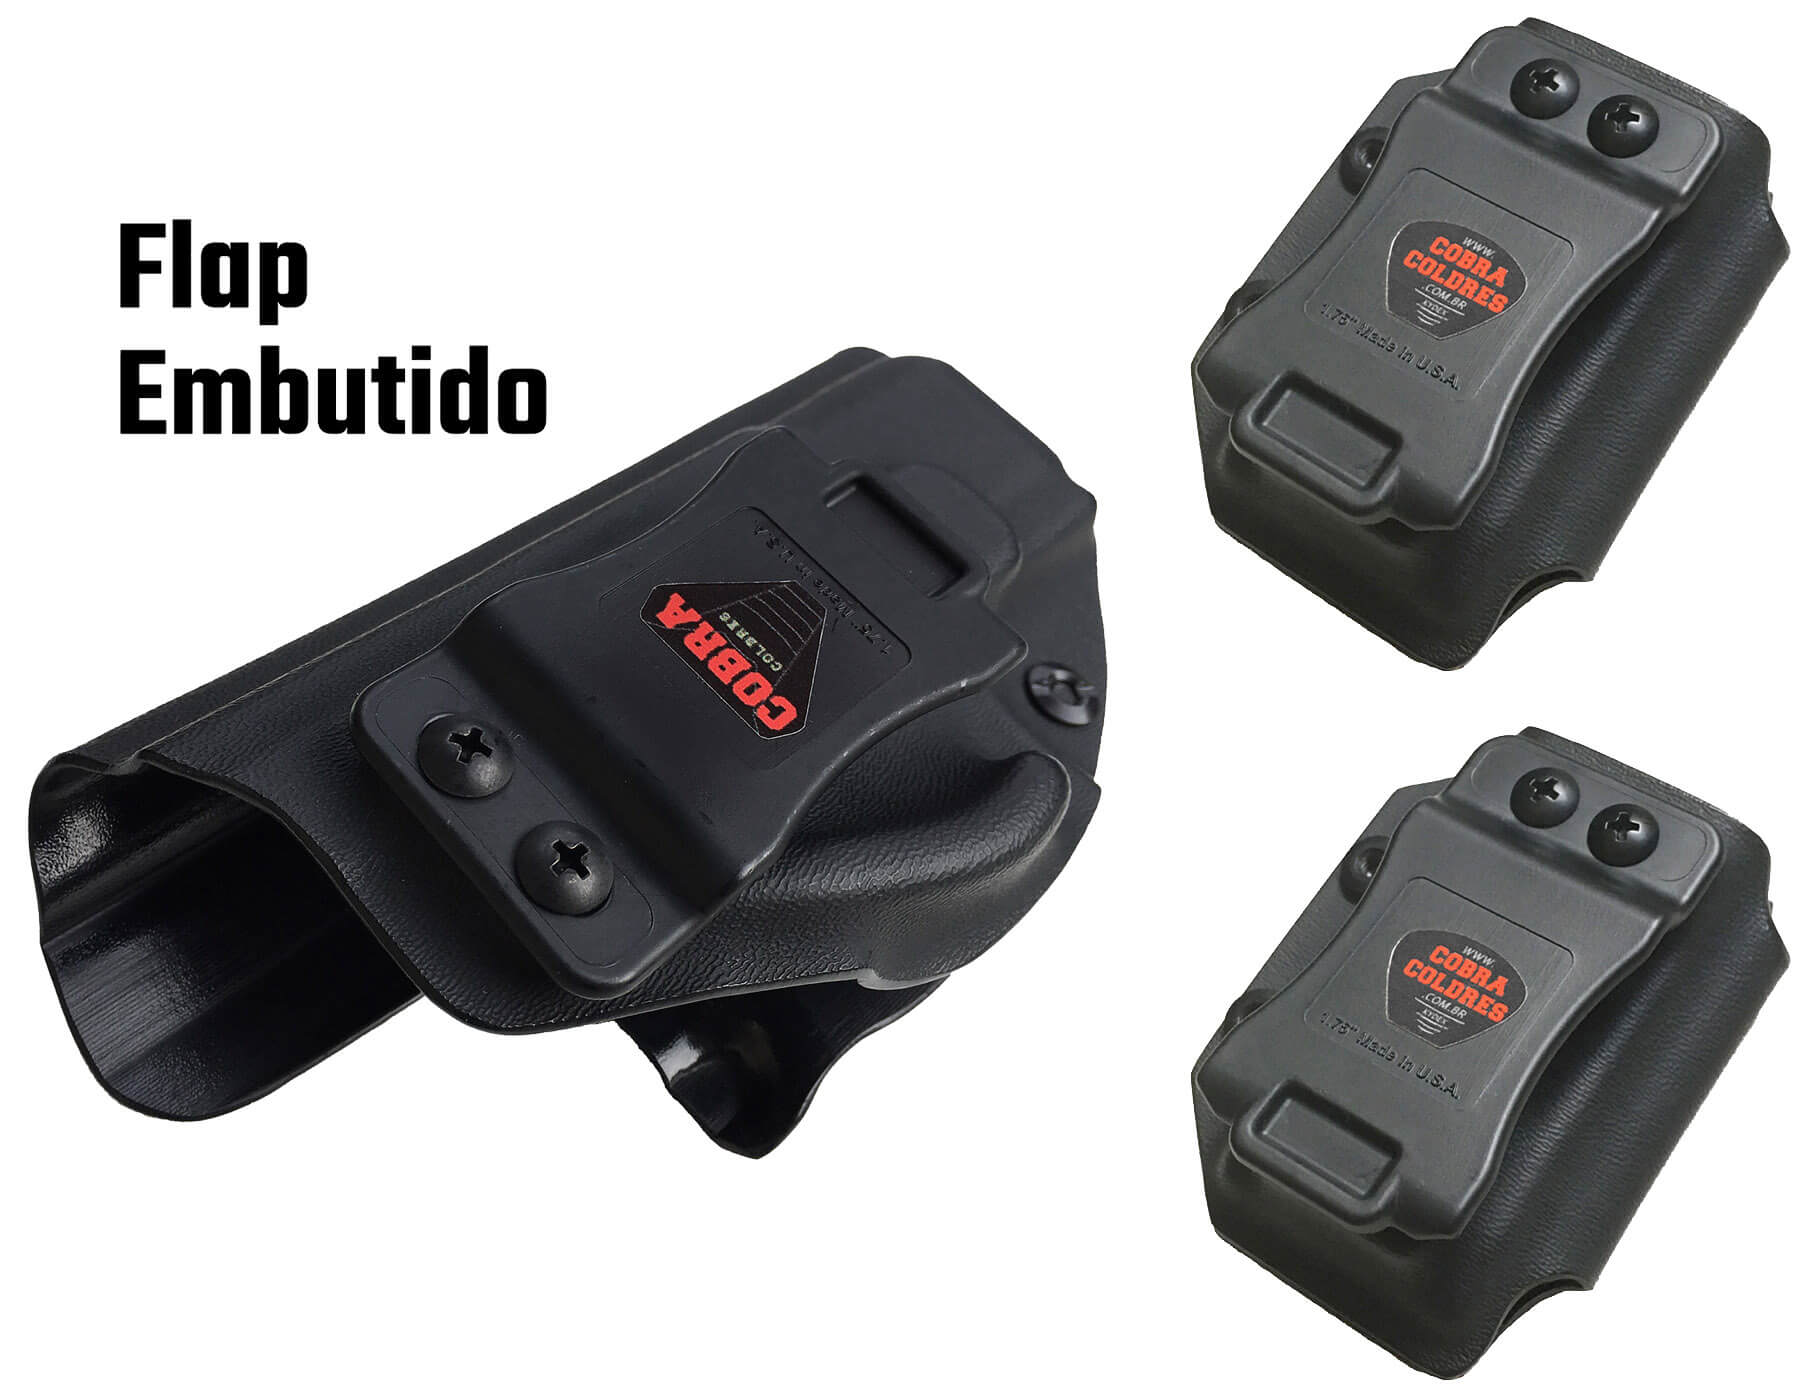 Coldre [G2c 9mm] Kydex Com Flap + 2 Porta-Carregadores Saque Rápido Velado Kydex®